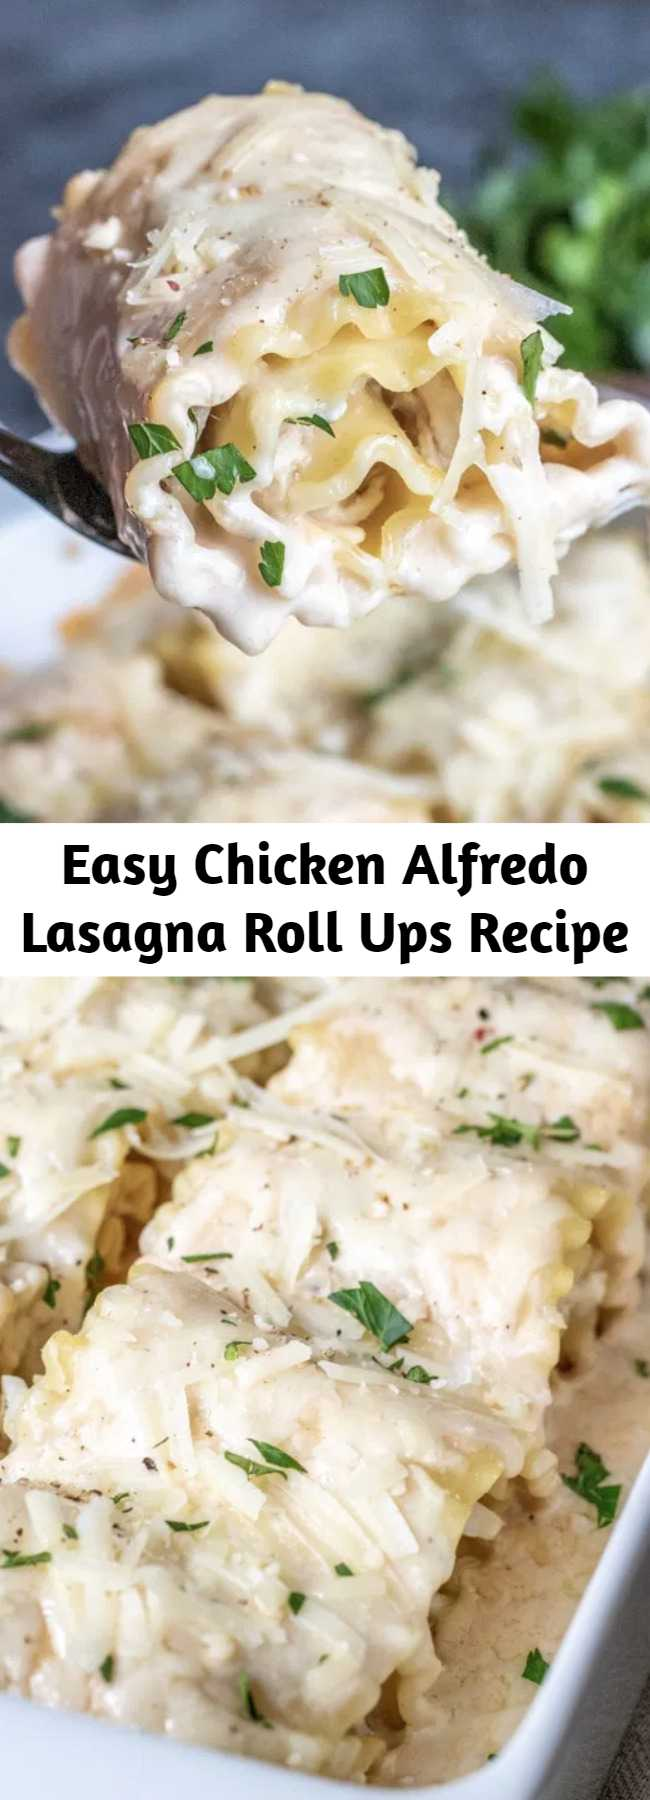 Easy Chicken Alfredo Lasagna Roll Ups Recipe - These Chicken Alfredo Lasagna Roll Ups are all of the flavors of classic Chicken Alfredo rolled up into lasagna noodles to make easy lasagna rolls. A simple weeknight dinner recipe that the whole family will love. #lasagna #chickenalfredo #pasta #casserole